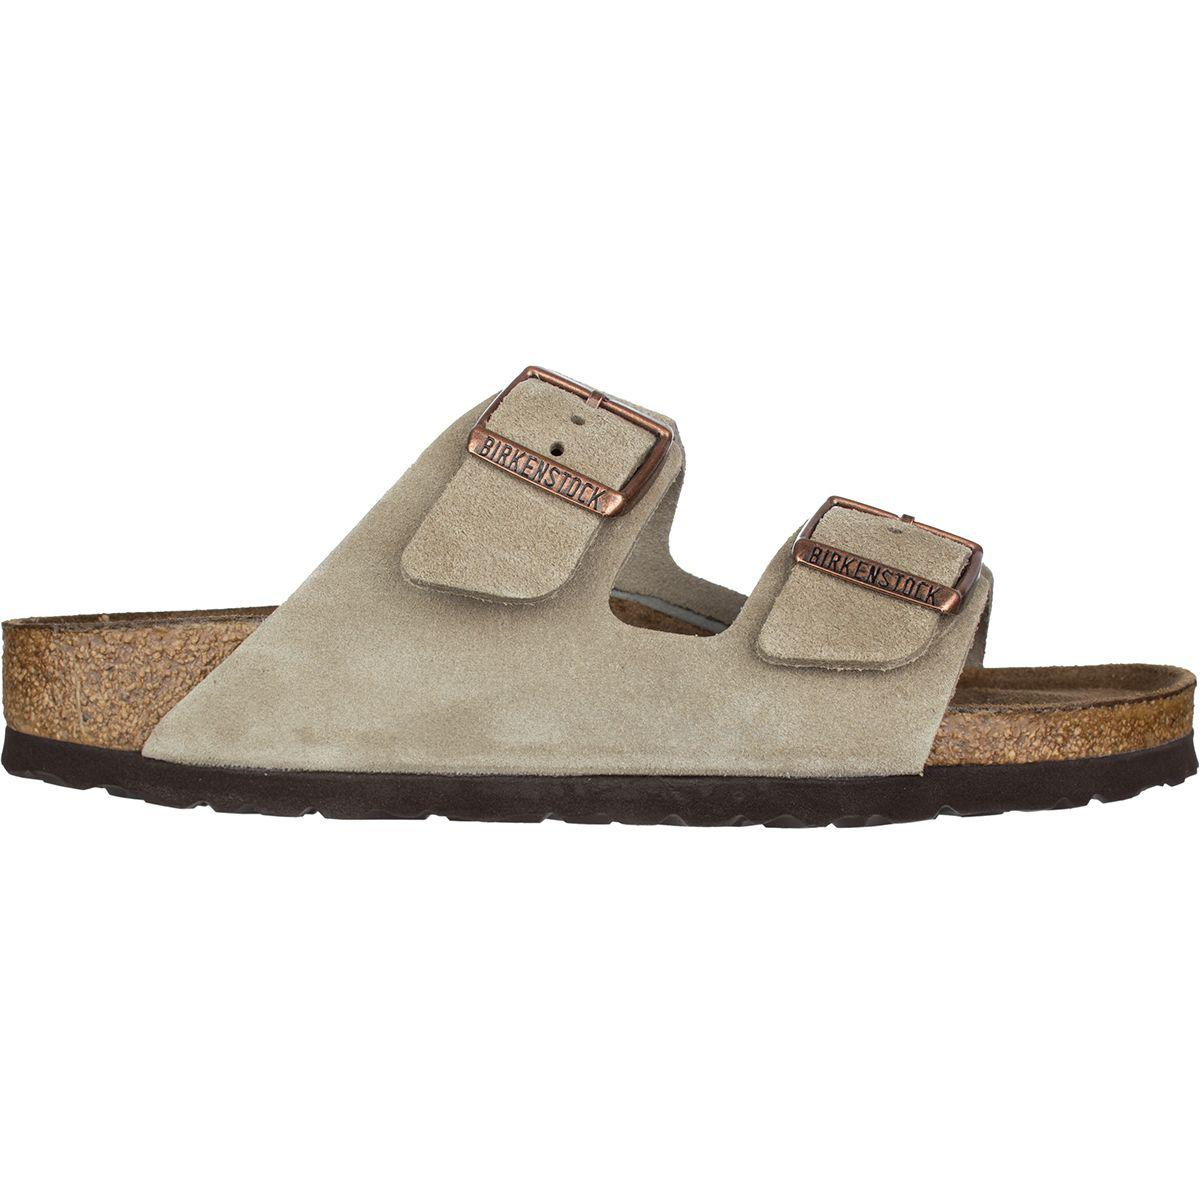 7ea1c960b234 Lyst - Birkenstock Arizona Soft Footbed Suede Narrow Sandal in Brown